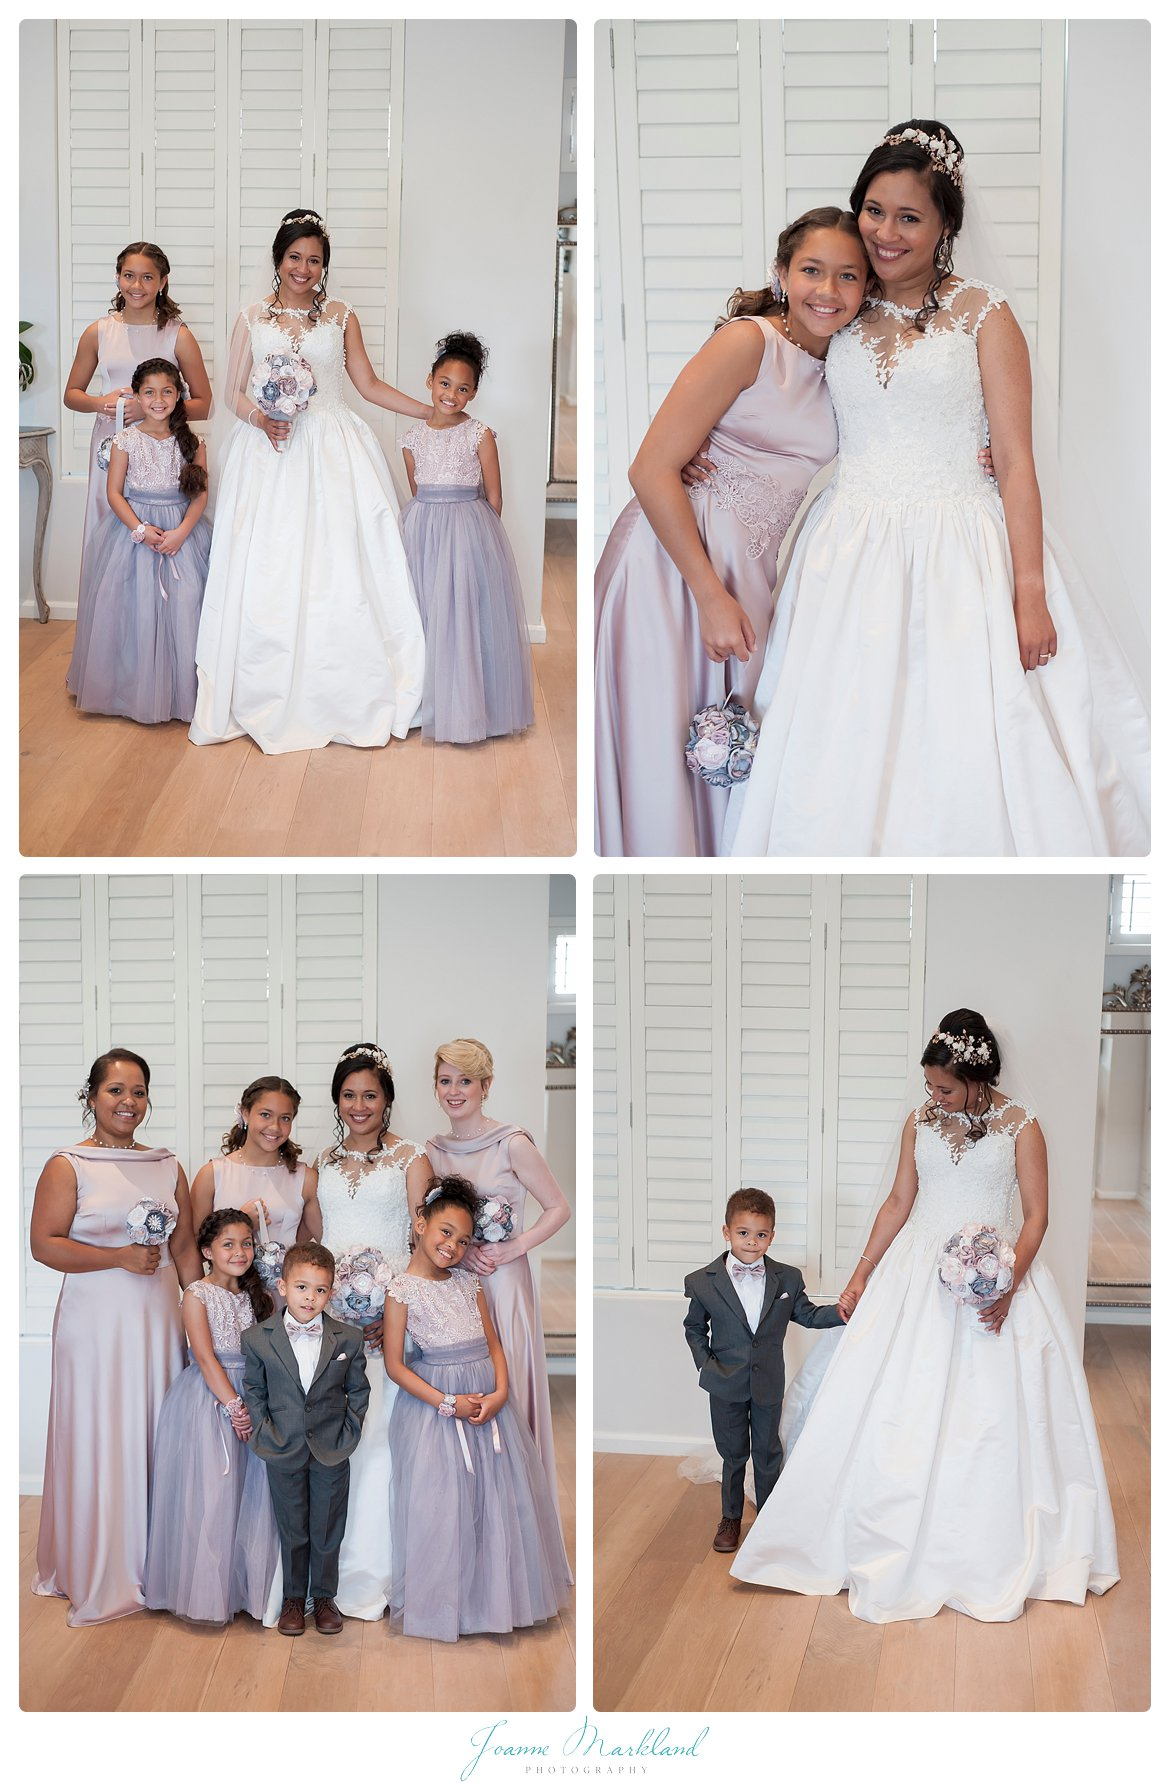 Val_de_vie_wedding_joanne_markland_photography_paarl-017